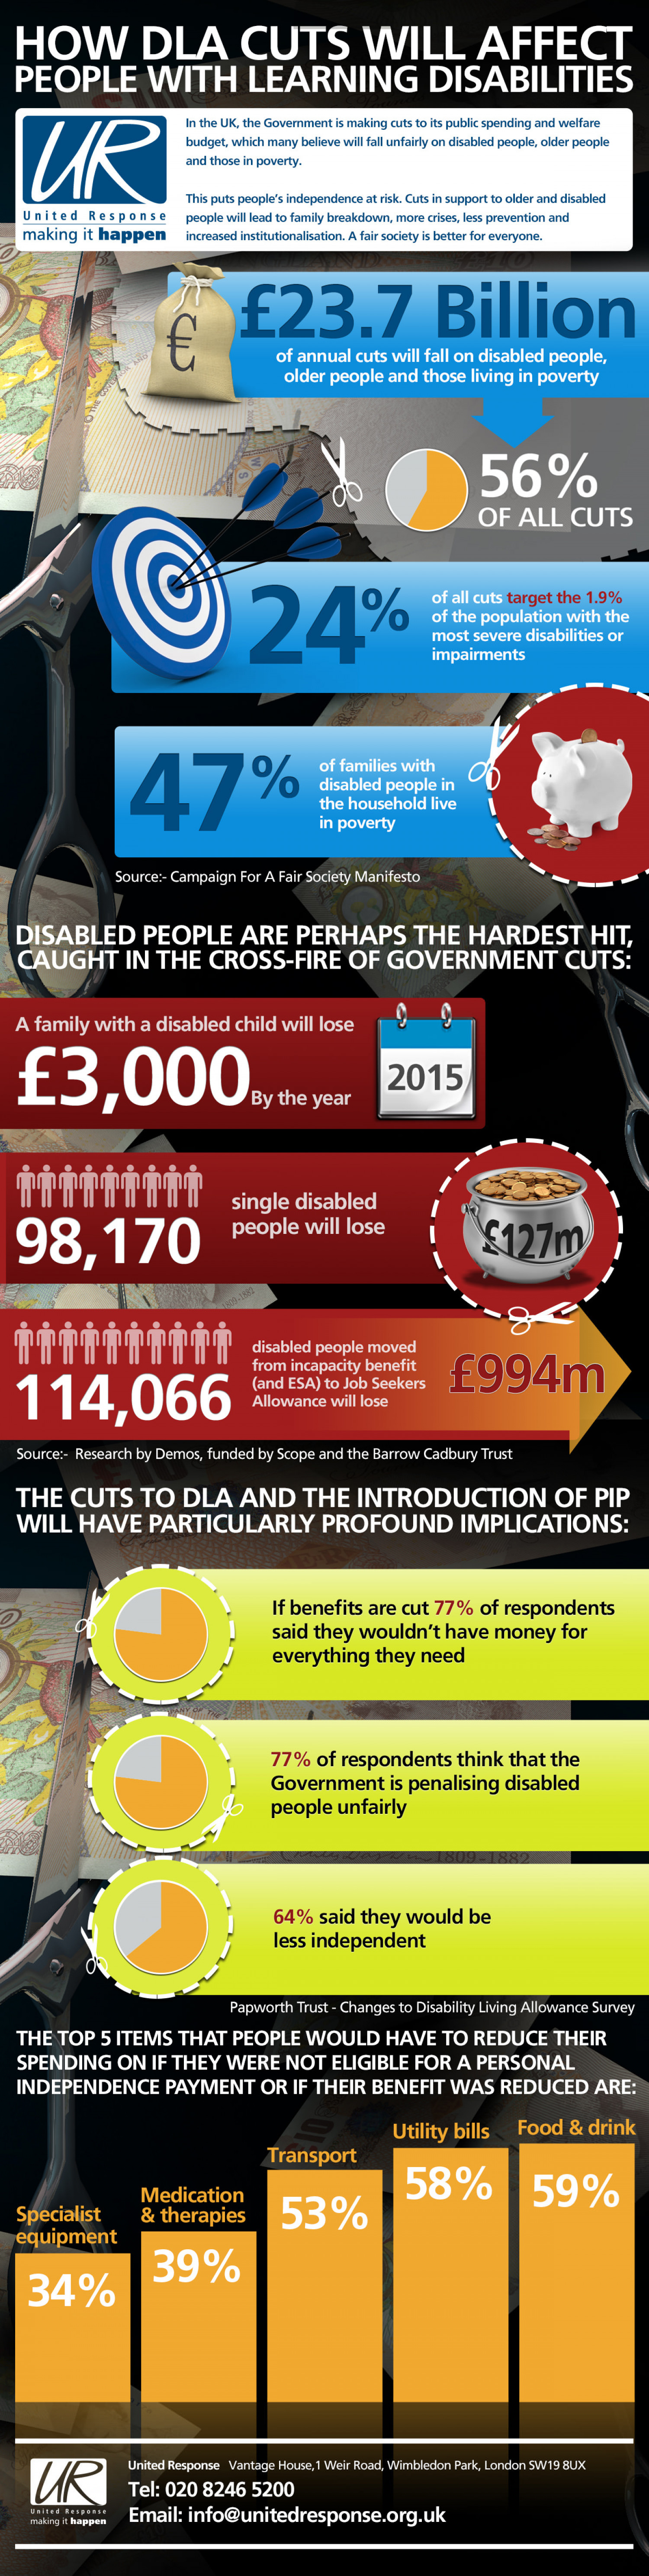 How will the DLA cuts affect people with learning disabilities? Infographic